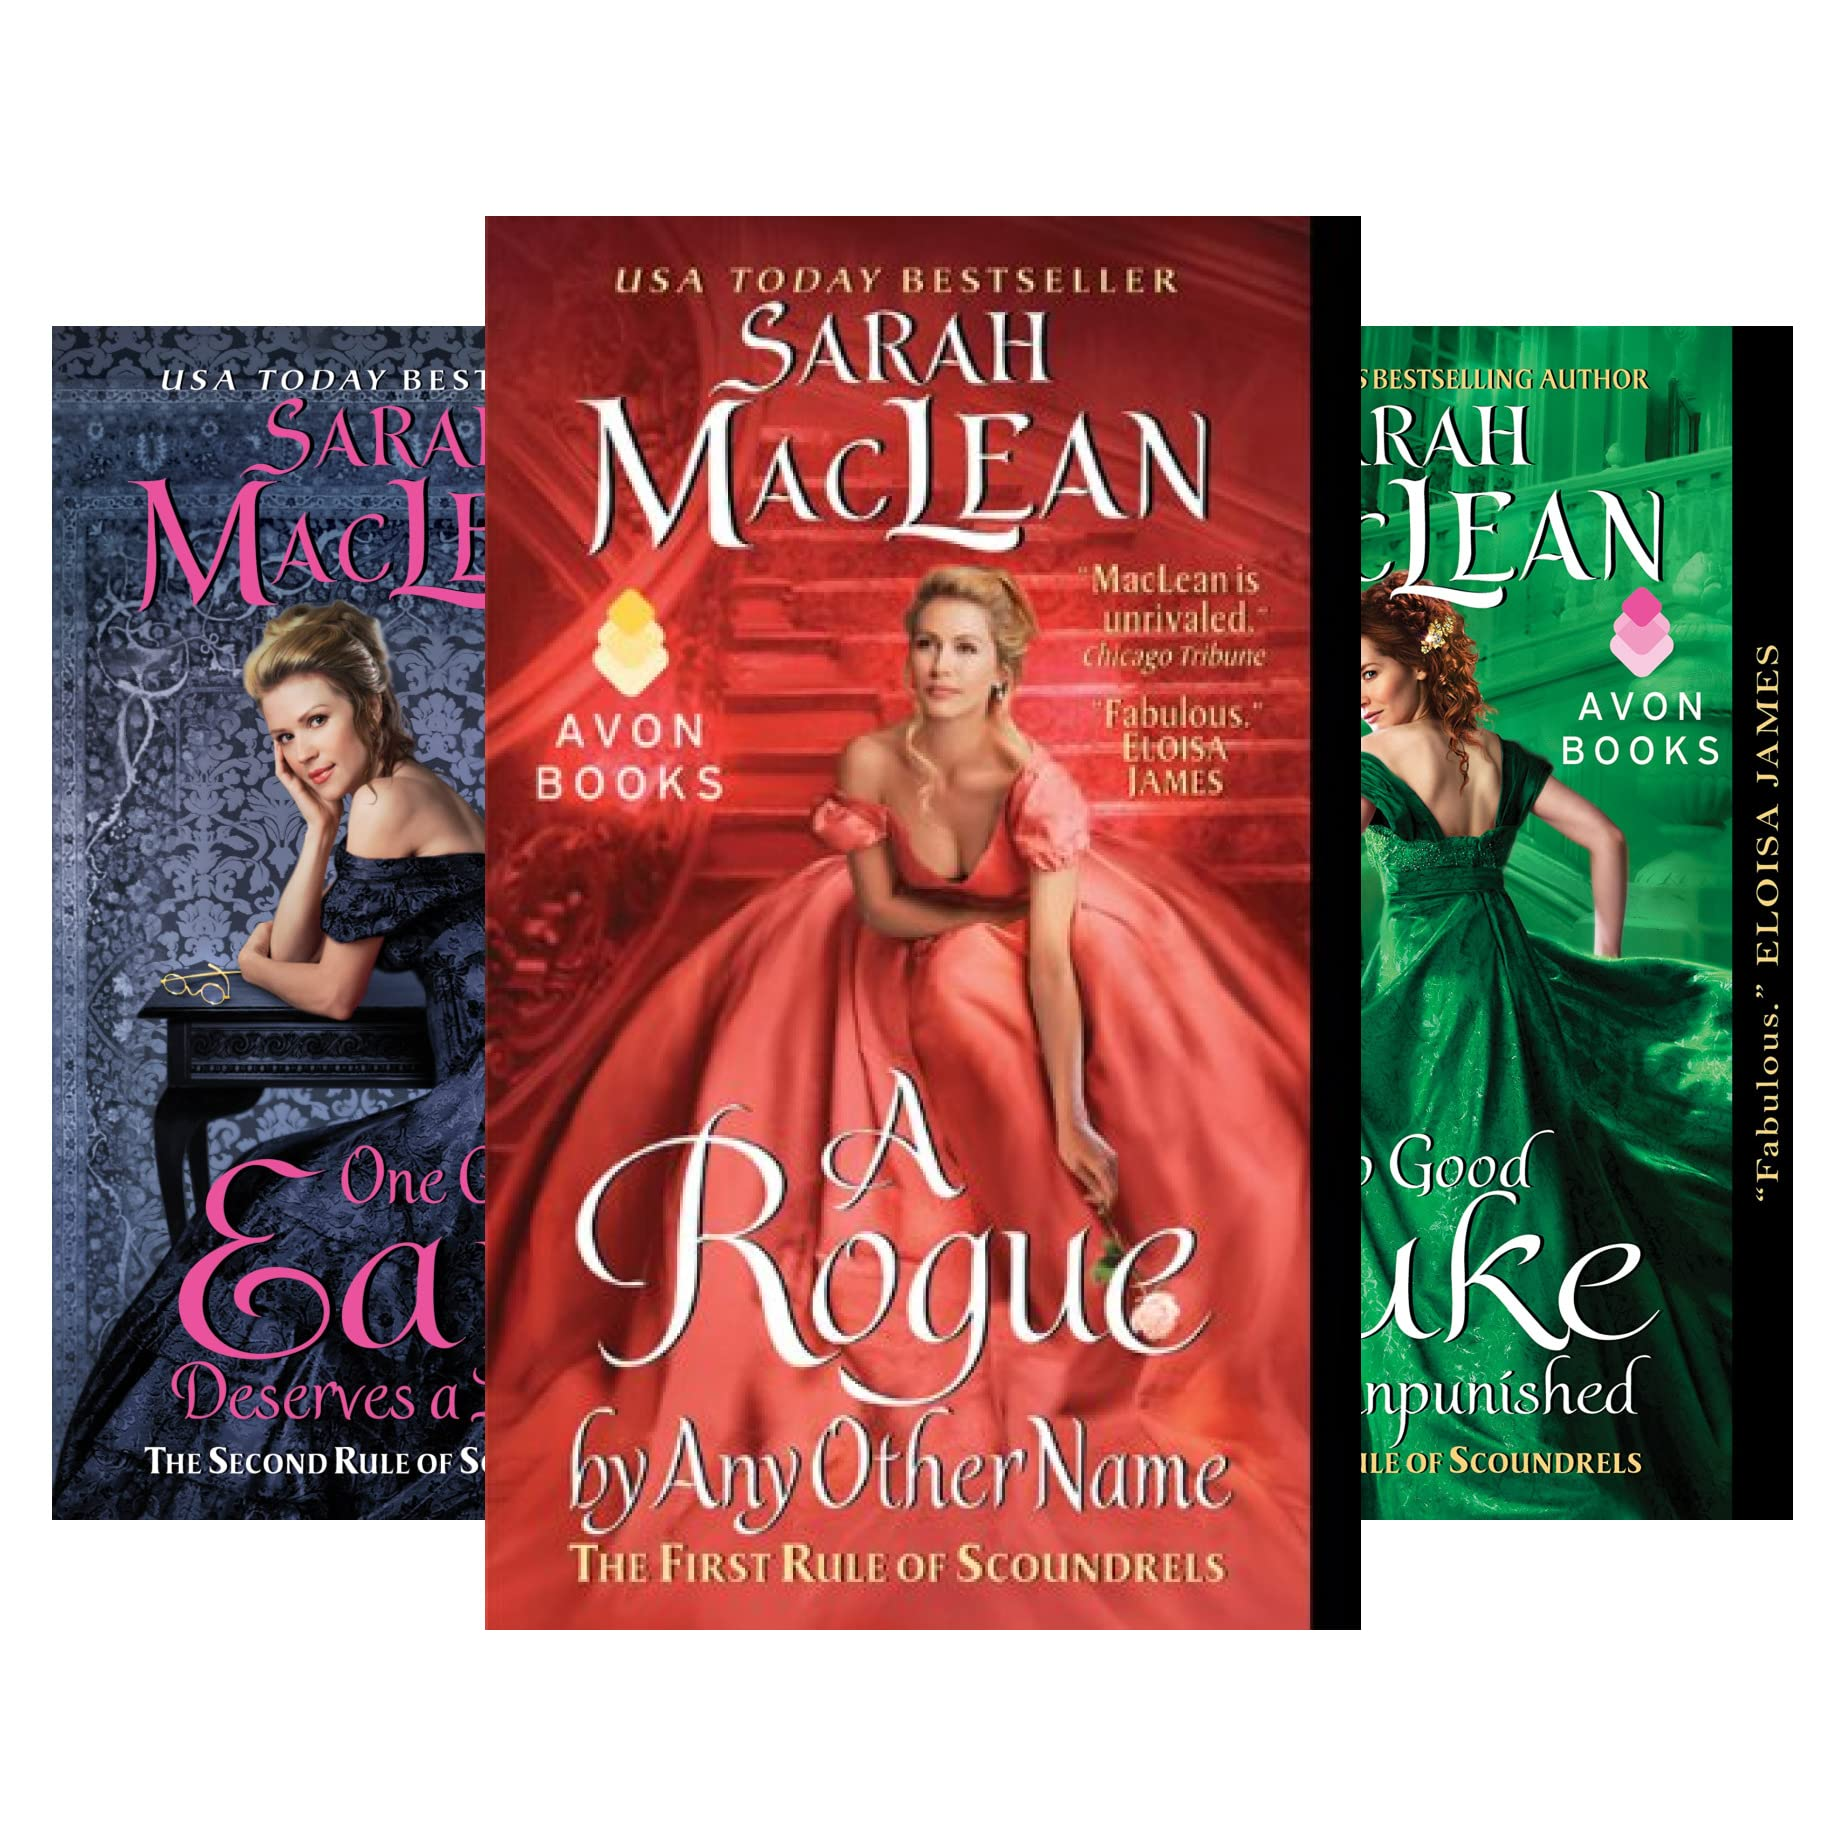 Sarah maclean goodreads giveaways